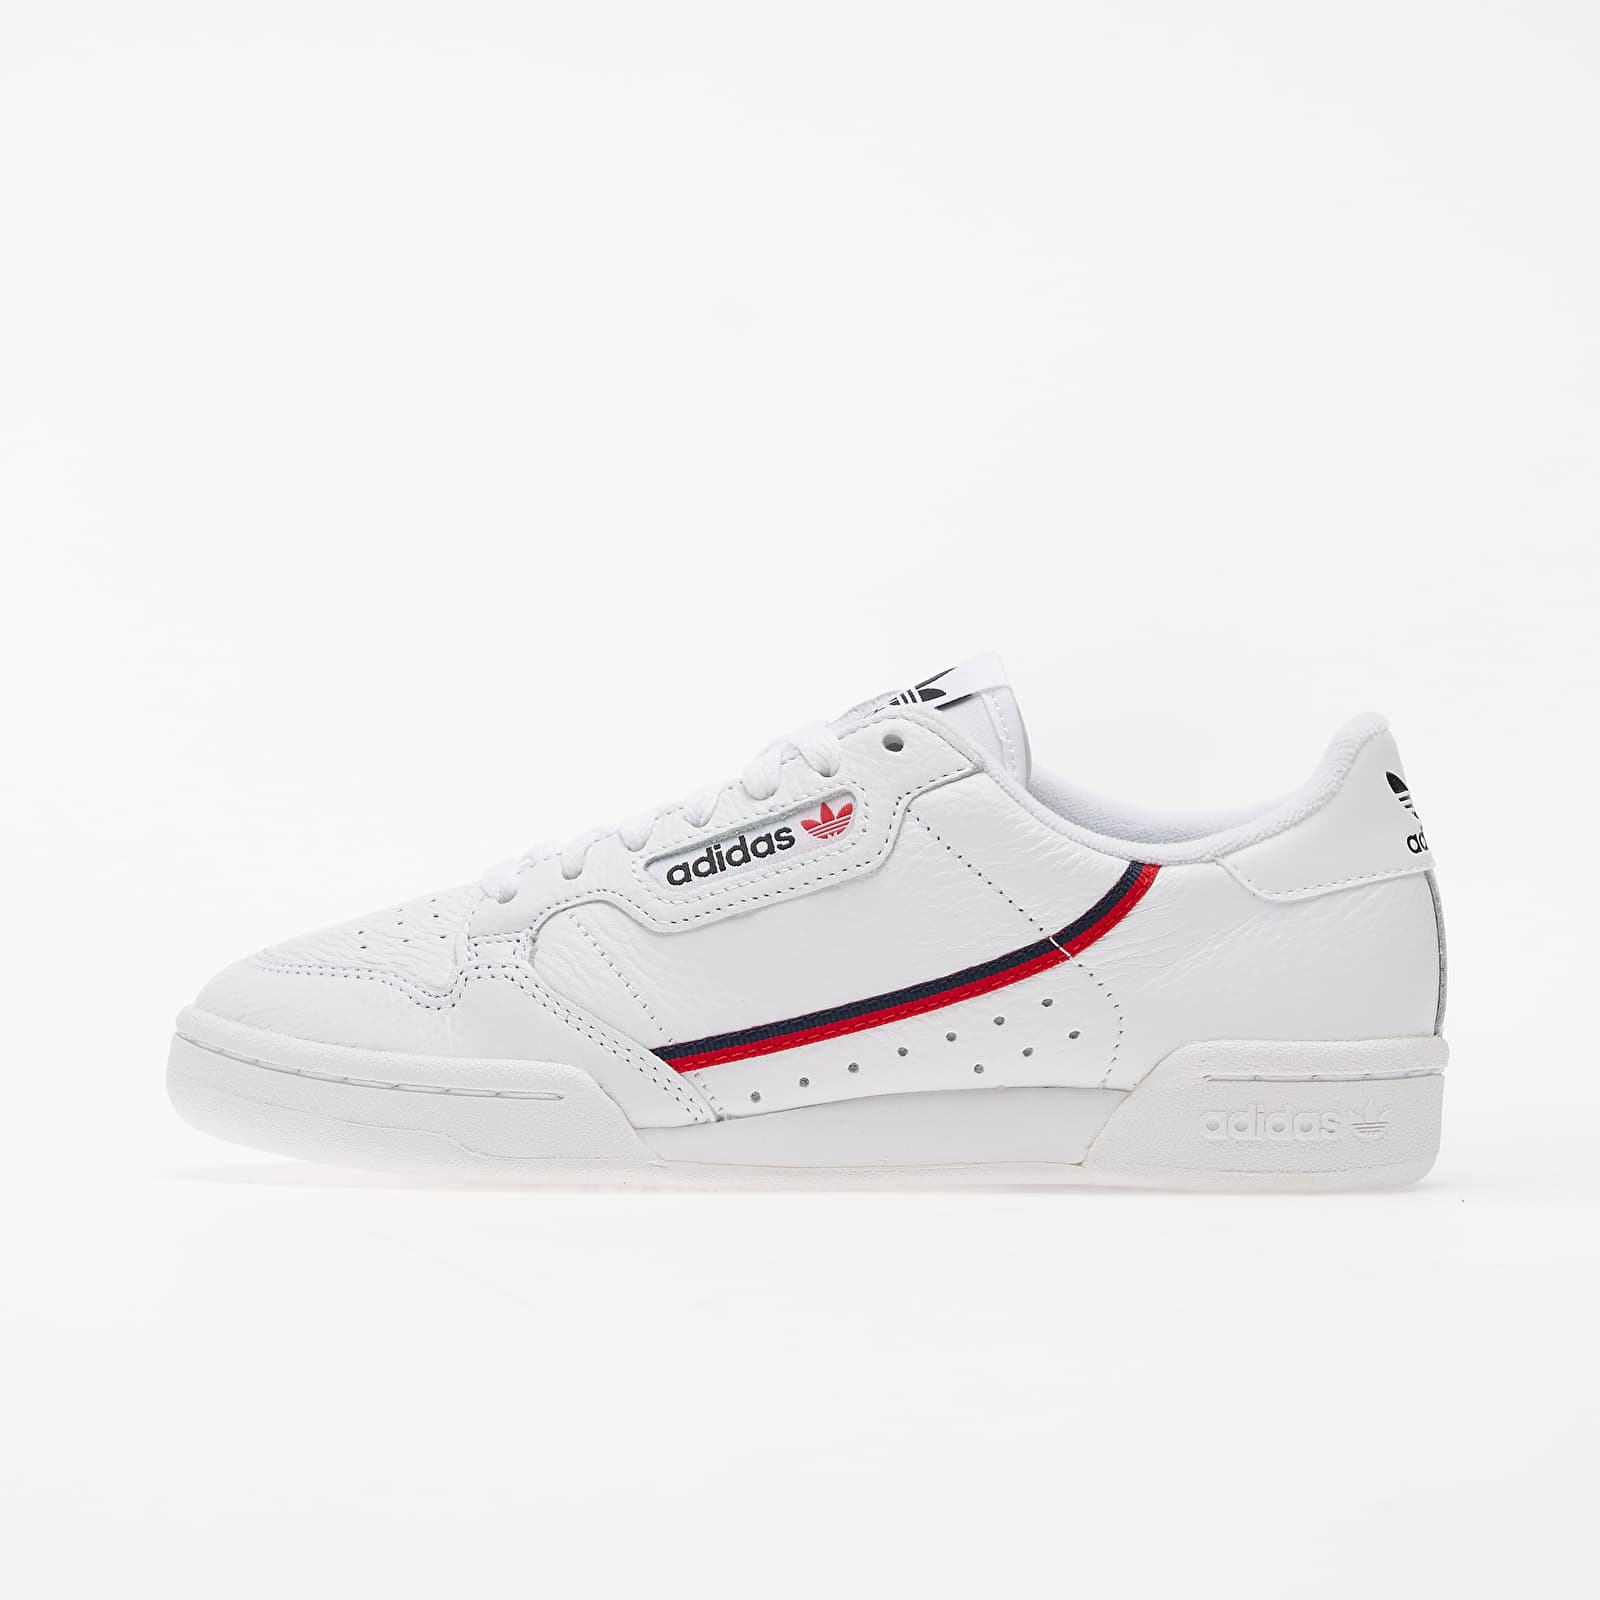 Men's shoes adidas Continental 80 Cloud White/ Scarlet/ Collegiate Navy